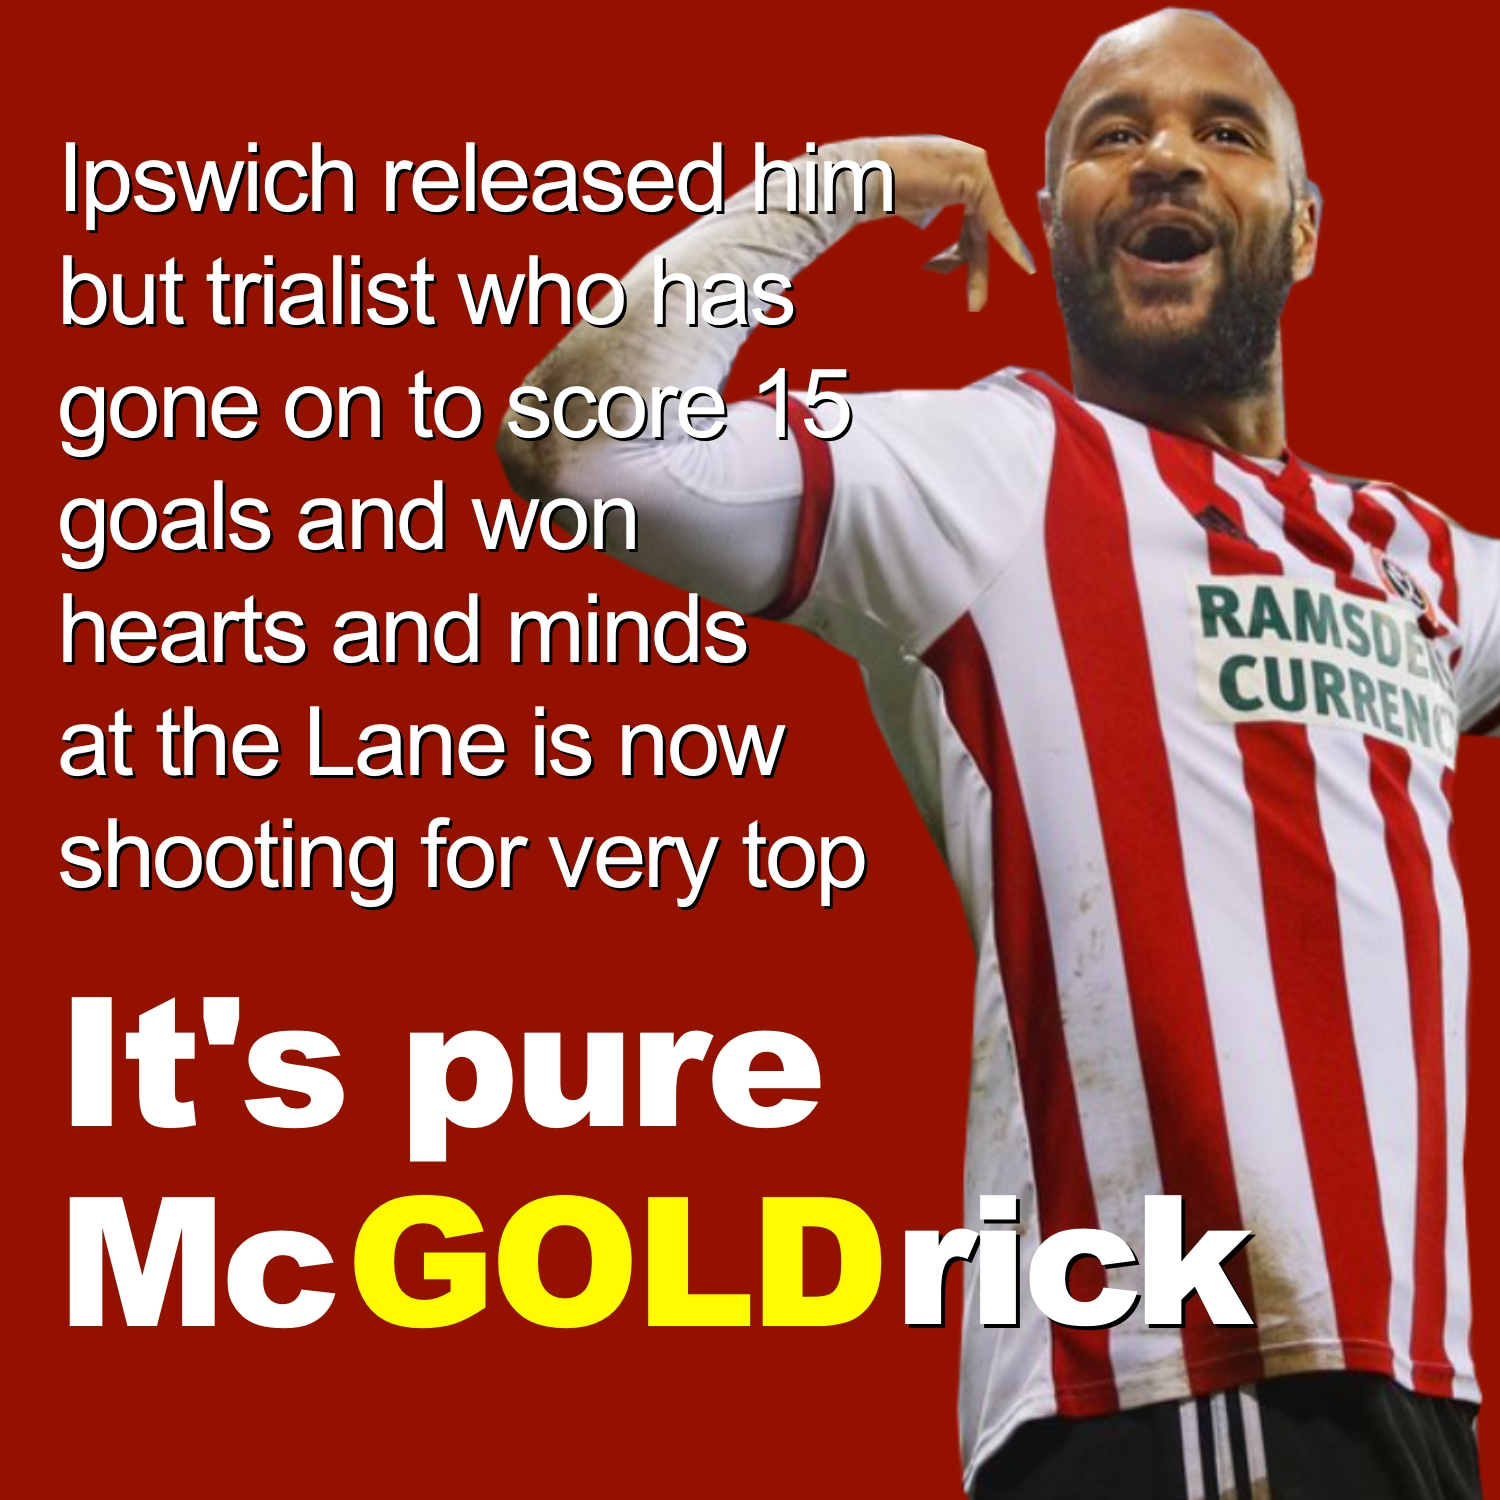 David is pure McGoldrick for Sheffield United as they prepare to secure return to Premier League against his old club Ipswich Town in sell-out at Bramall Lane.